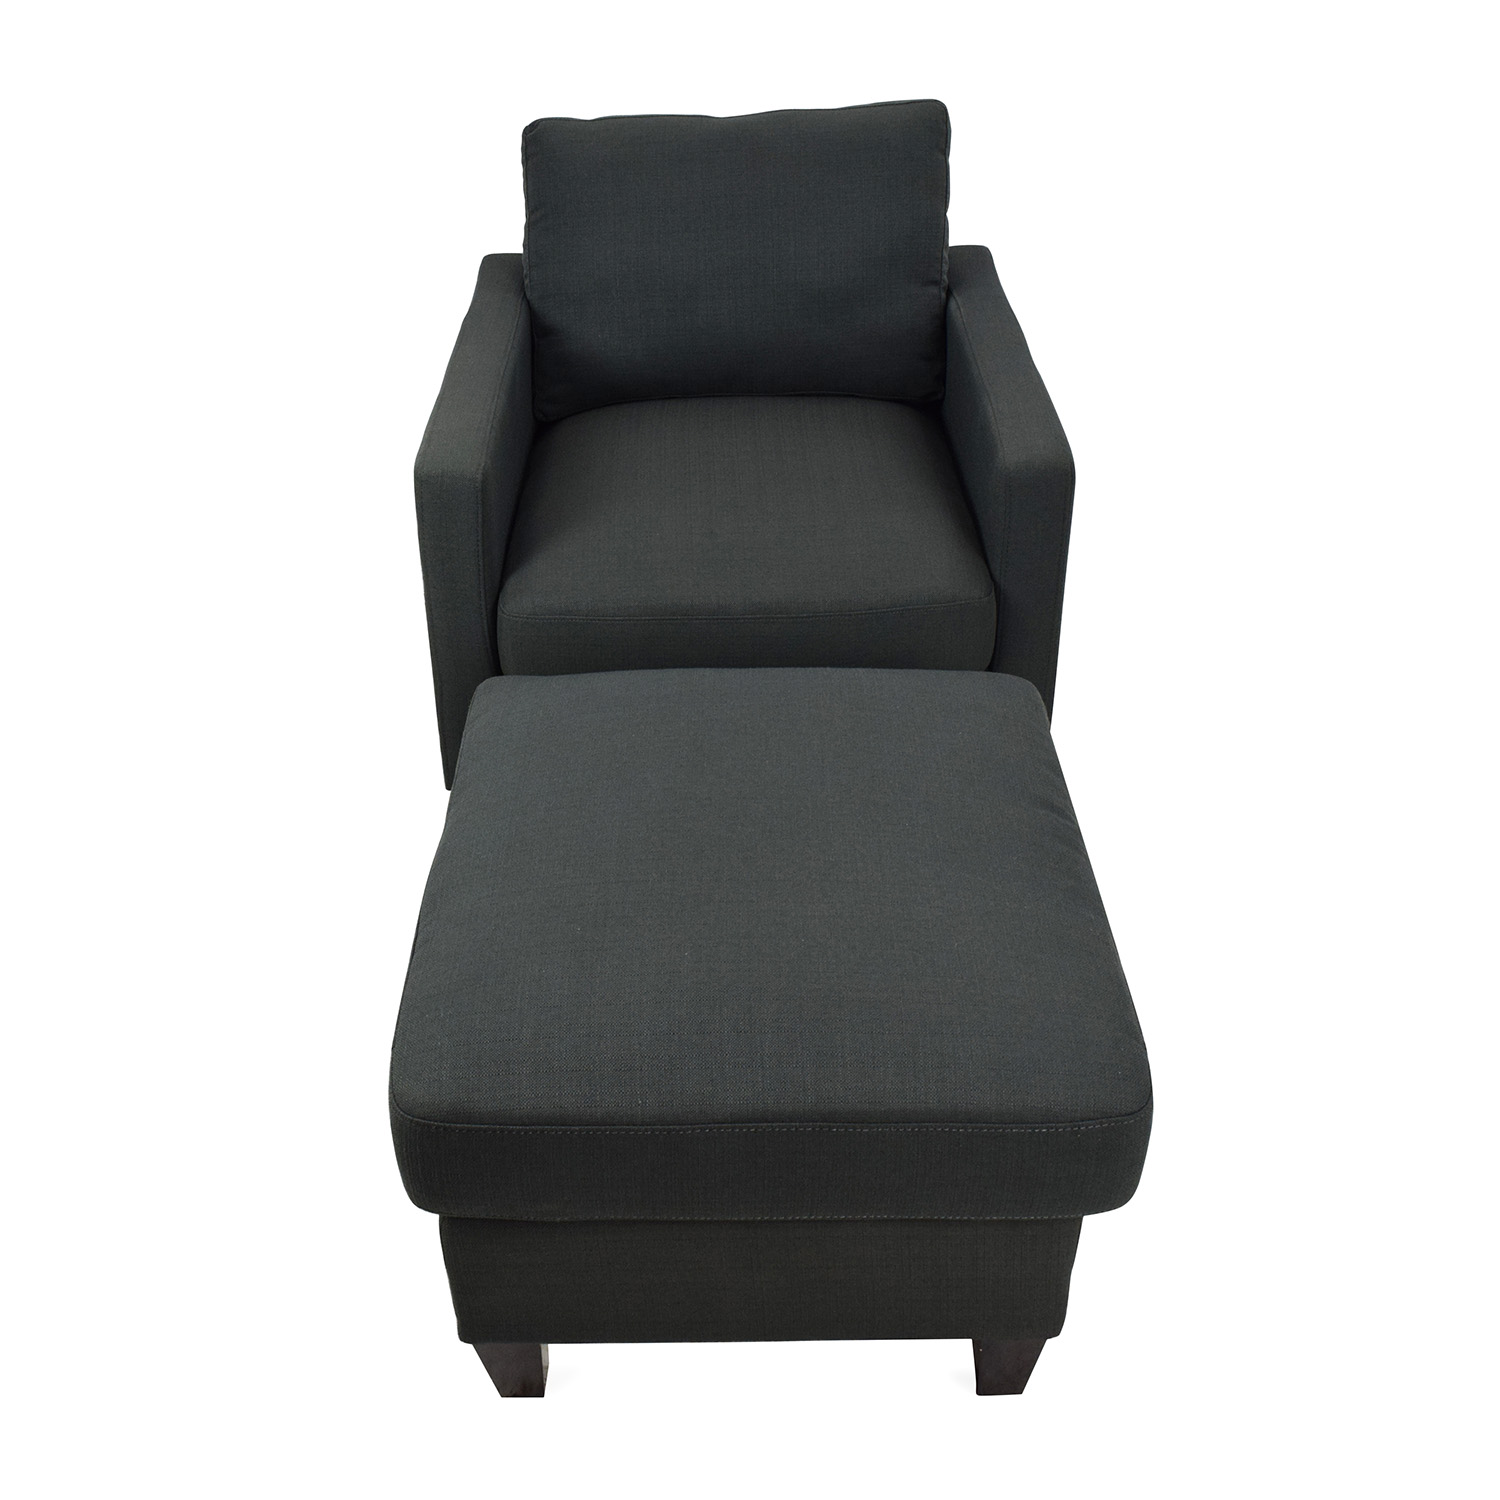 buy Dark Charcoal Blue Chair with Ottoman Accent Chairs